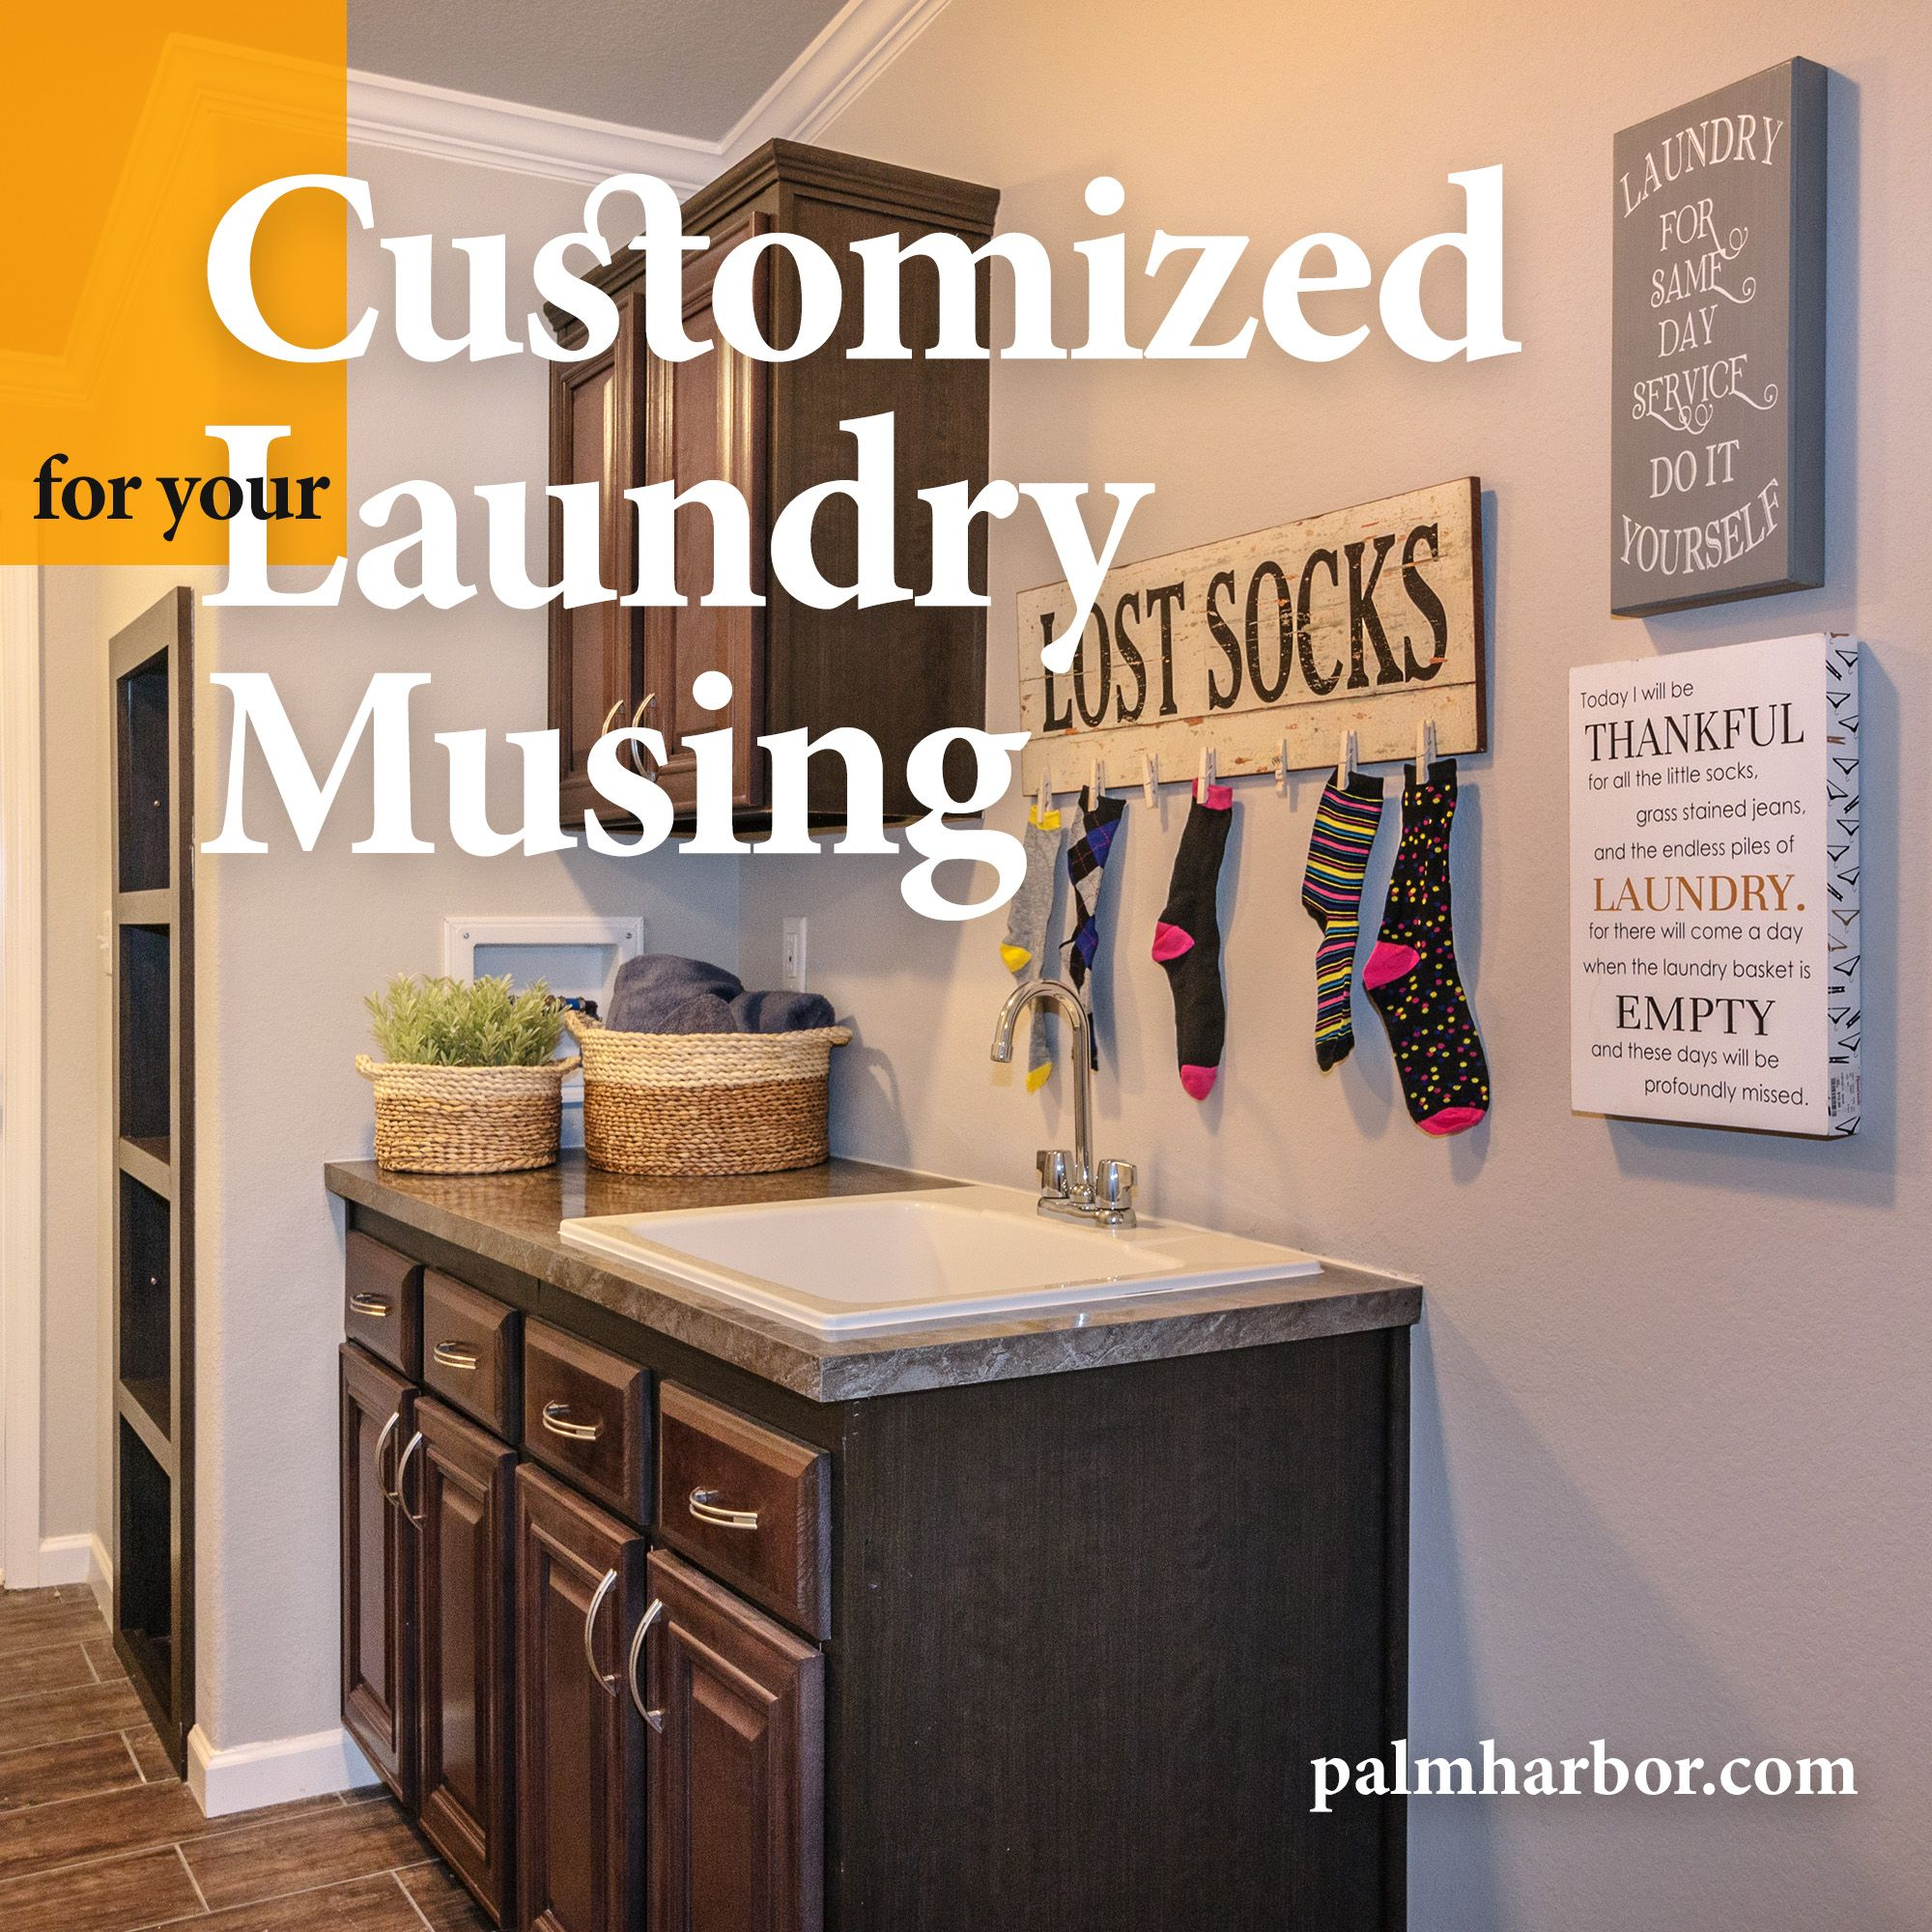 Yes, We Do Custom Homes. Cabinets, Countertops, Faucets